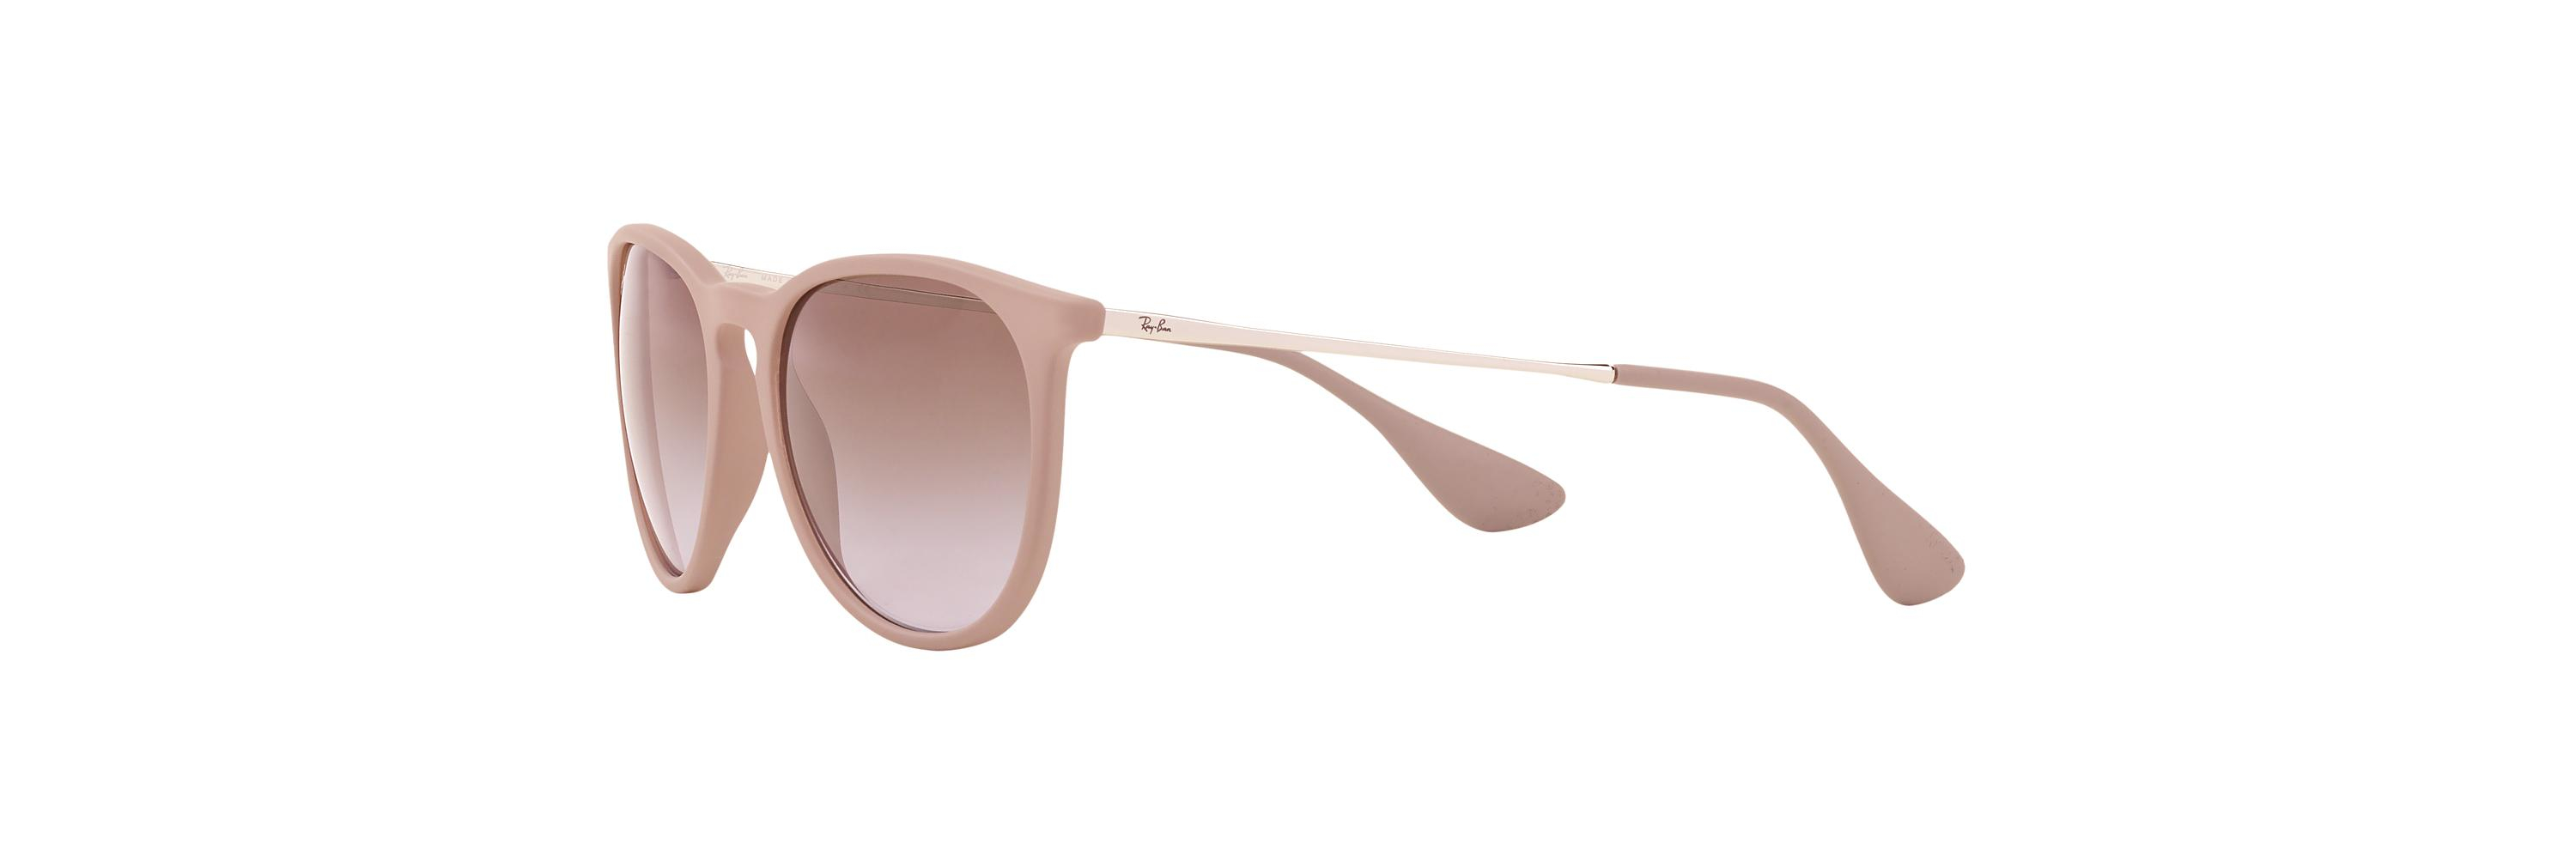 how to choose sunglasses color